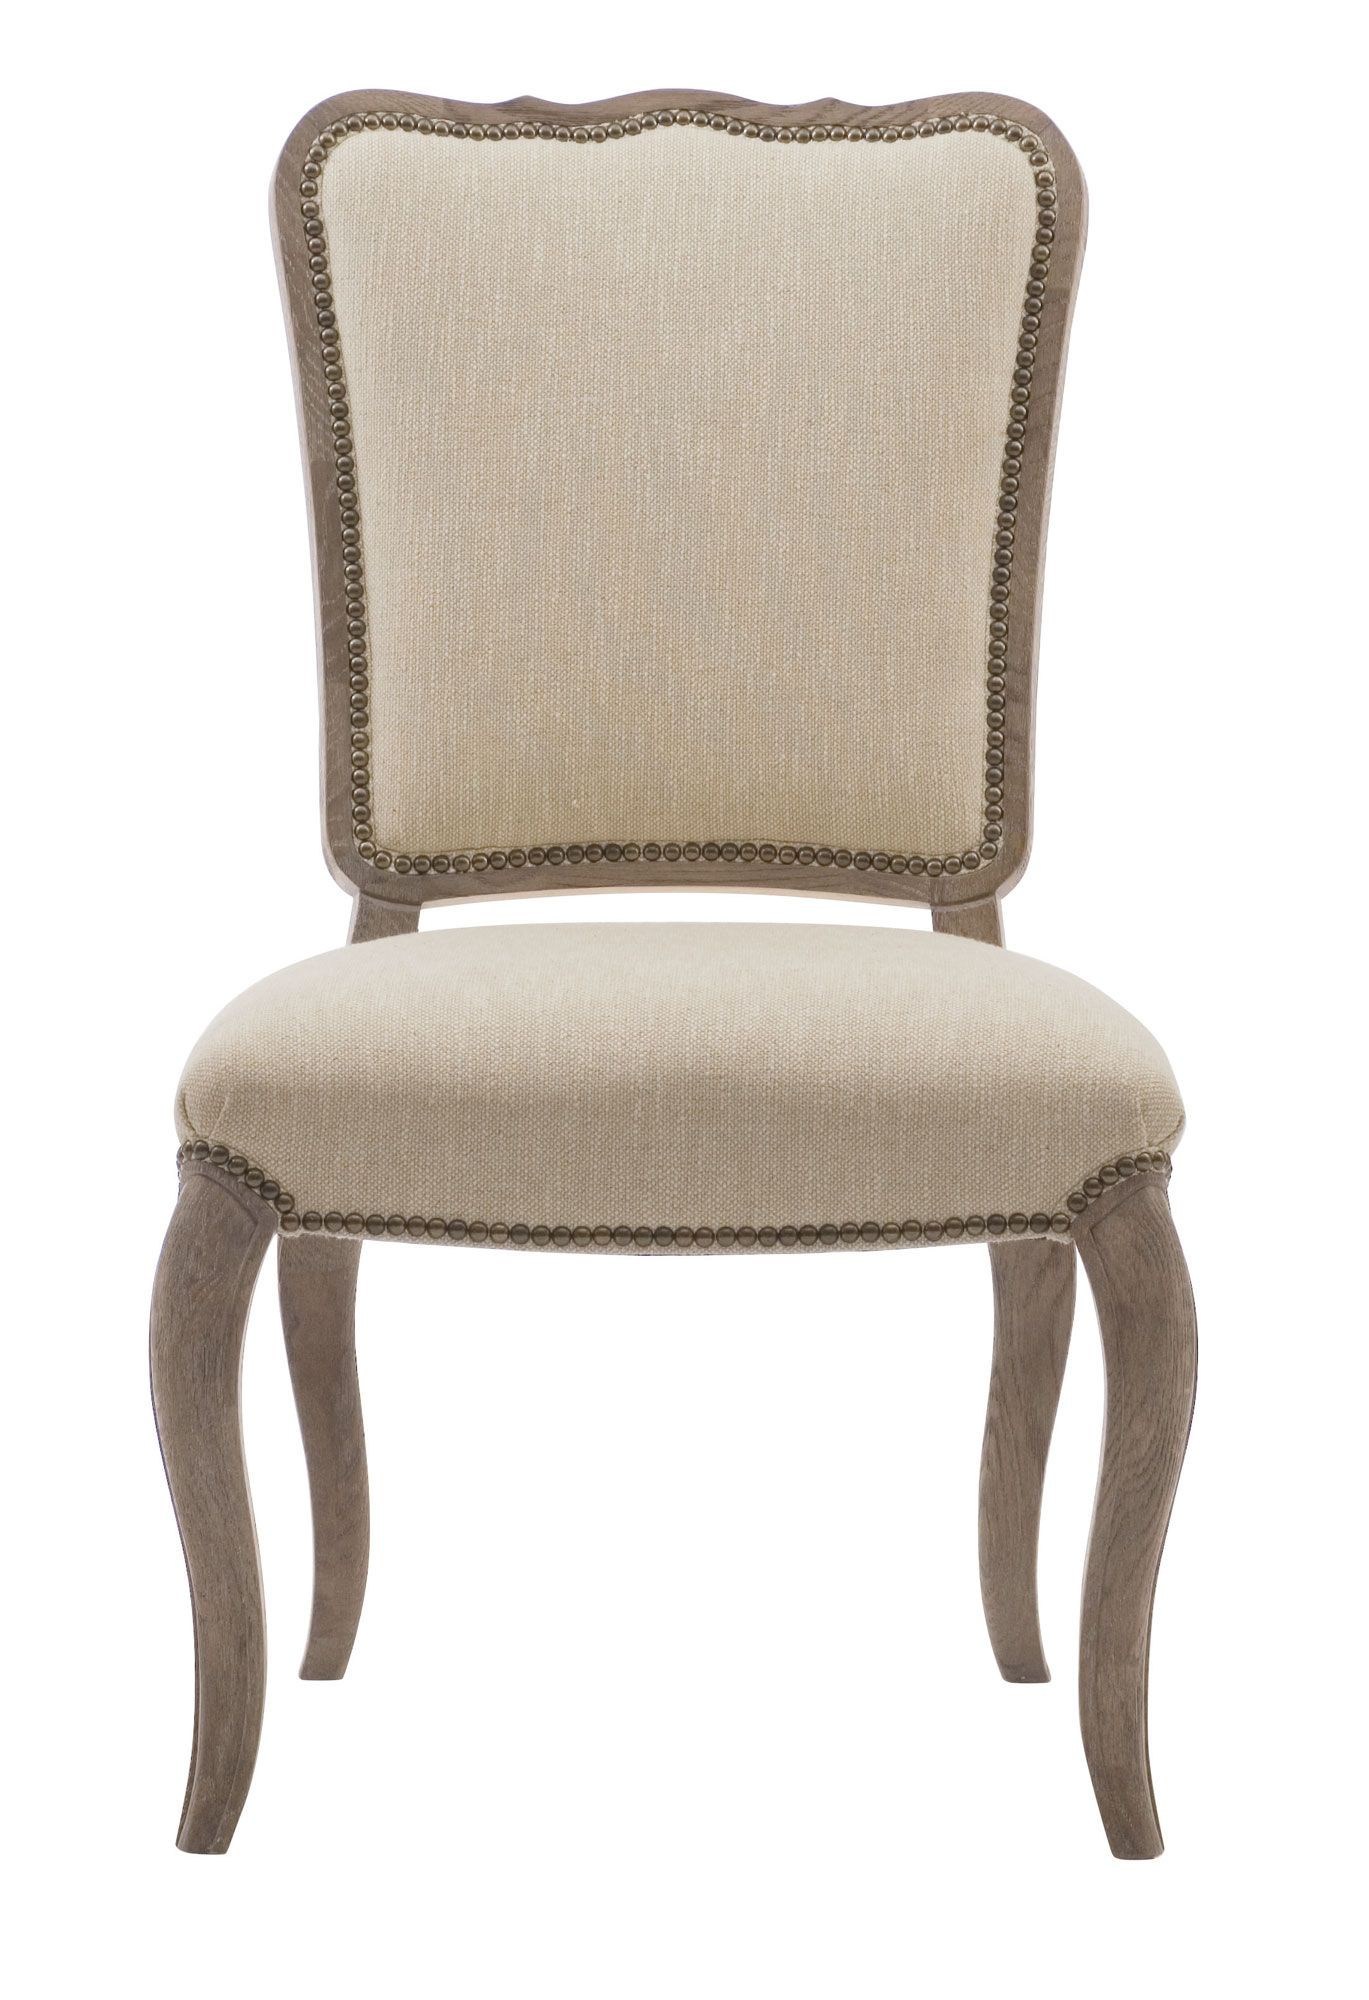 Weathered Oak Dining Chair Upholstered In A Textured Cream Linen And Trimmed With Upholstered Dining Side Chair Side Chairs Dining French Country Dining Chairs